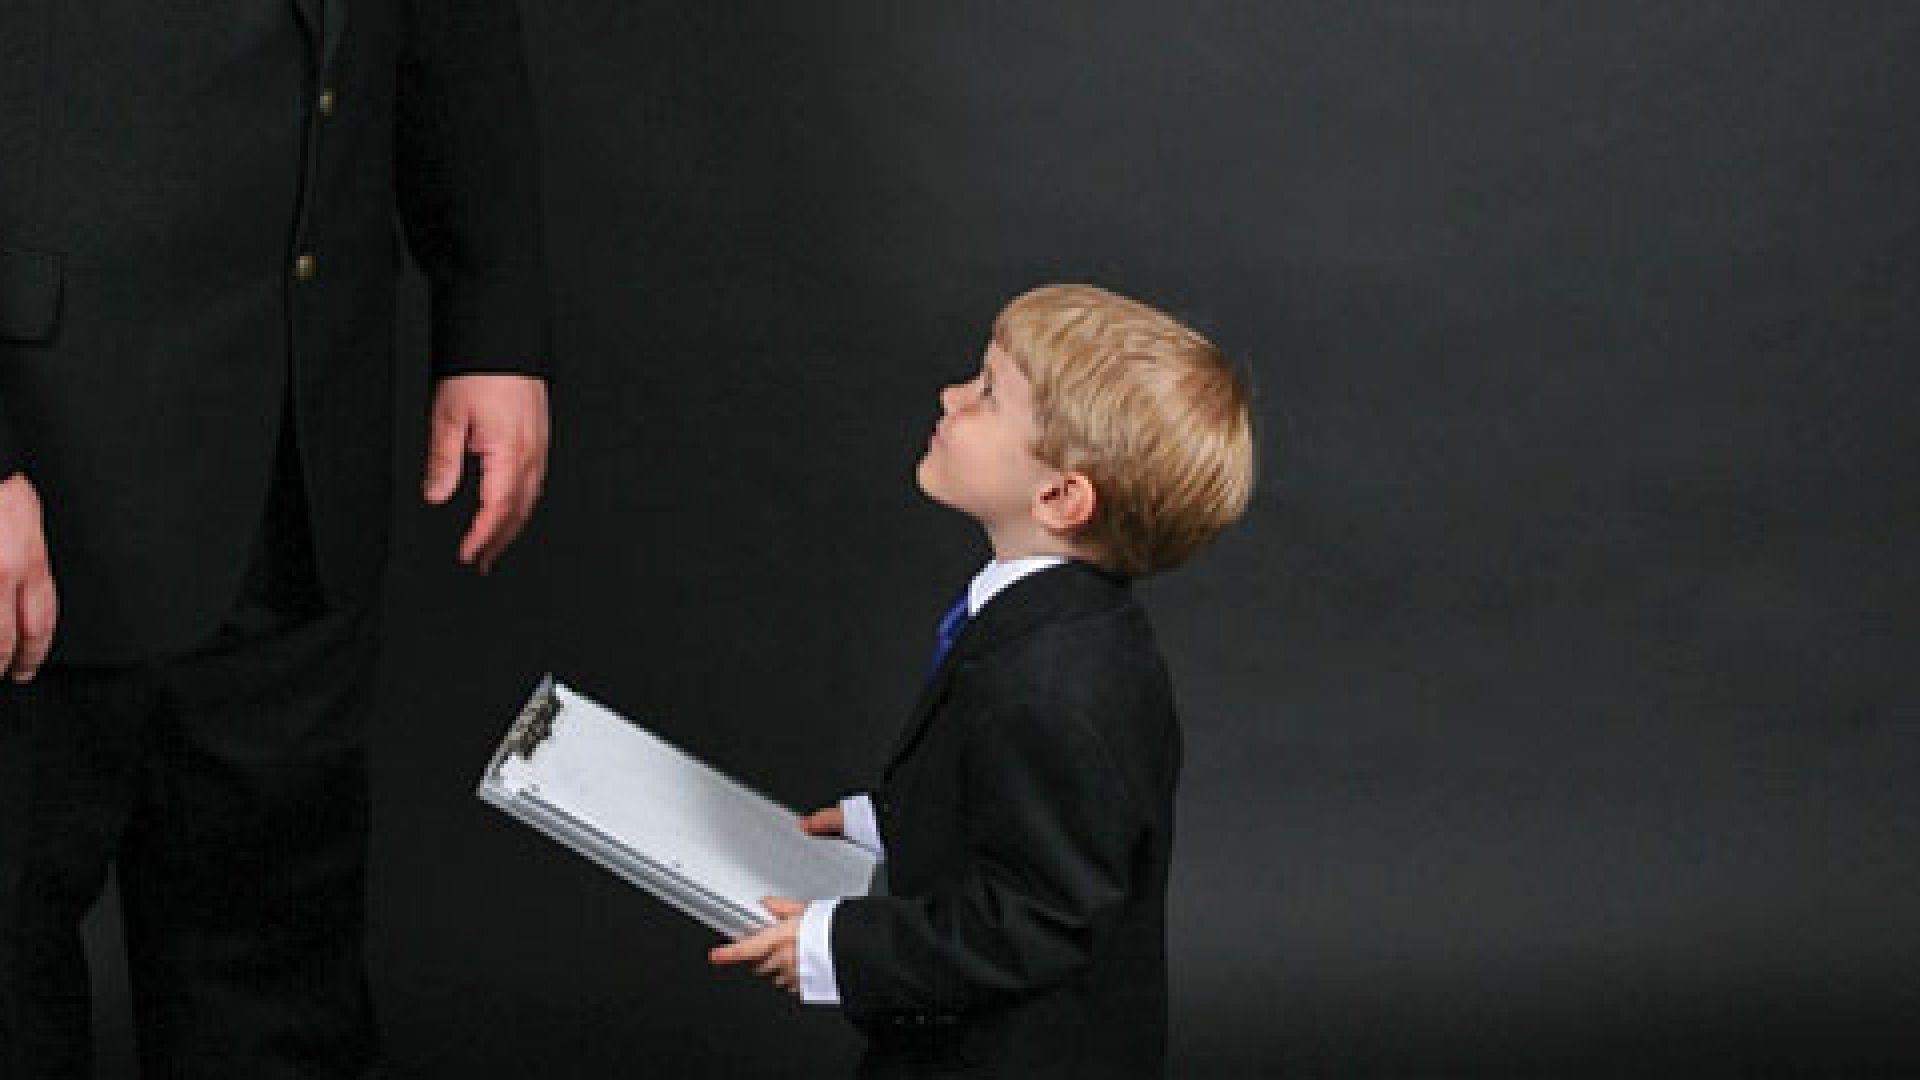 It is hard to be objective about hiring relatives, especially a son or daughter.